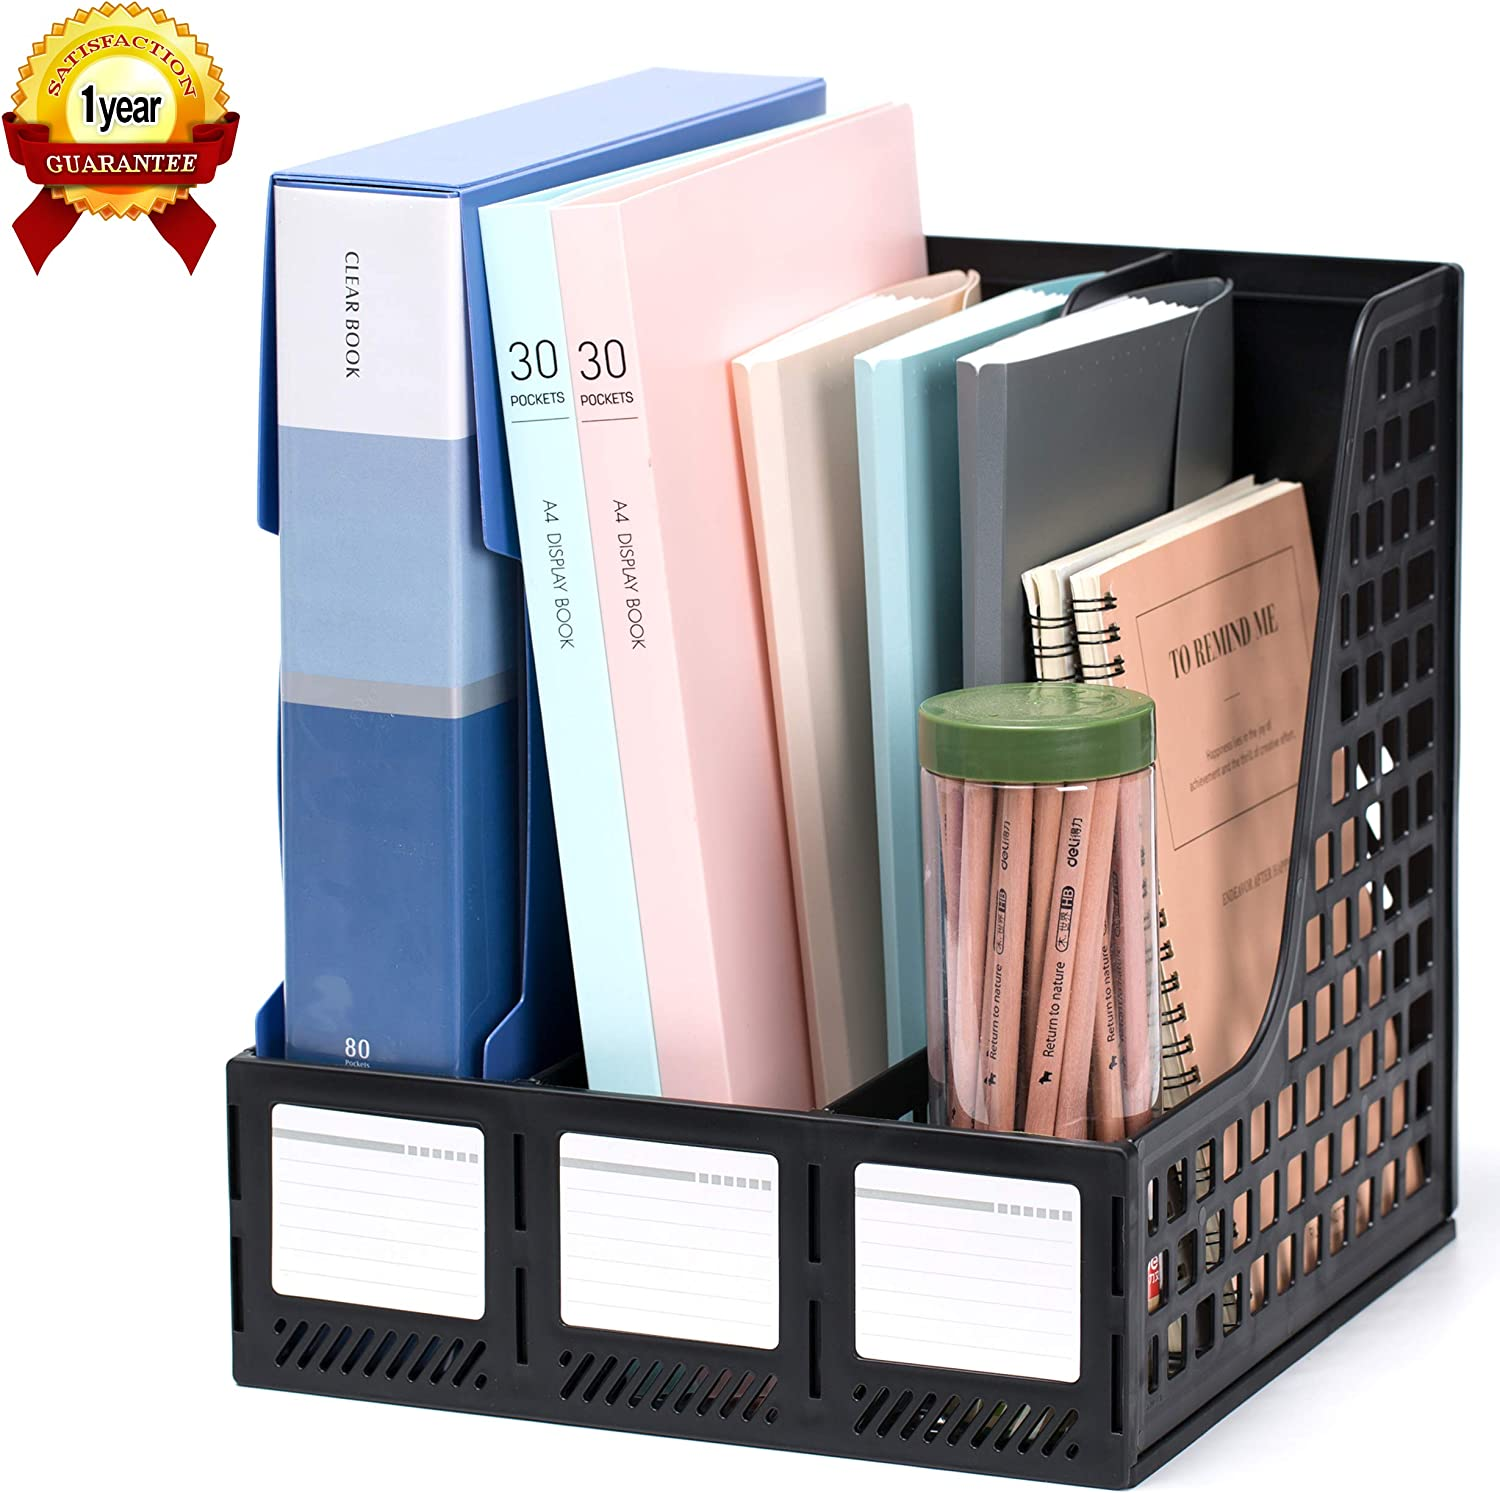 Leven Sturdy Magazine File Holder Desk Organizer File Folder for Office  Organization and Storage with 45 Vertical Compartments,